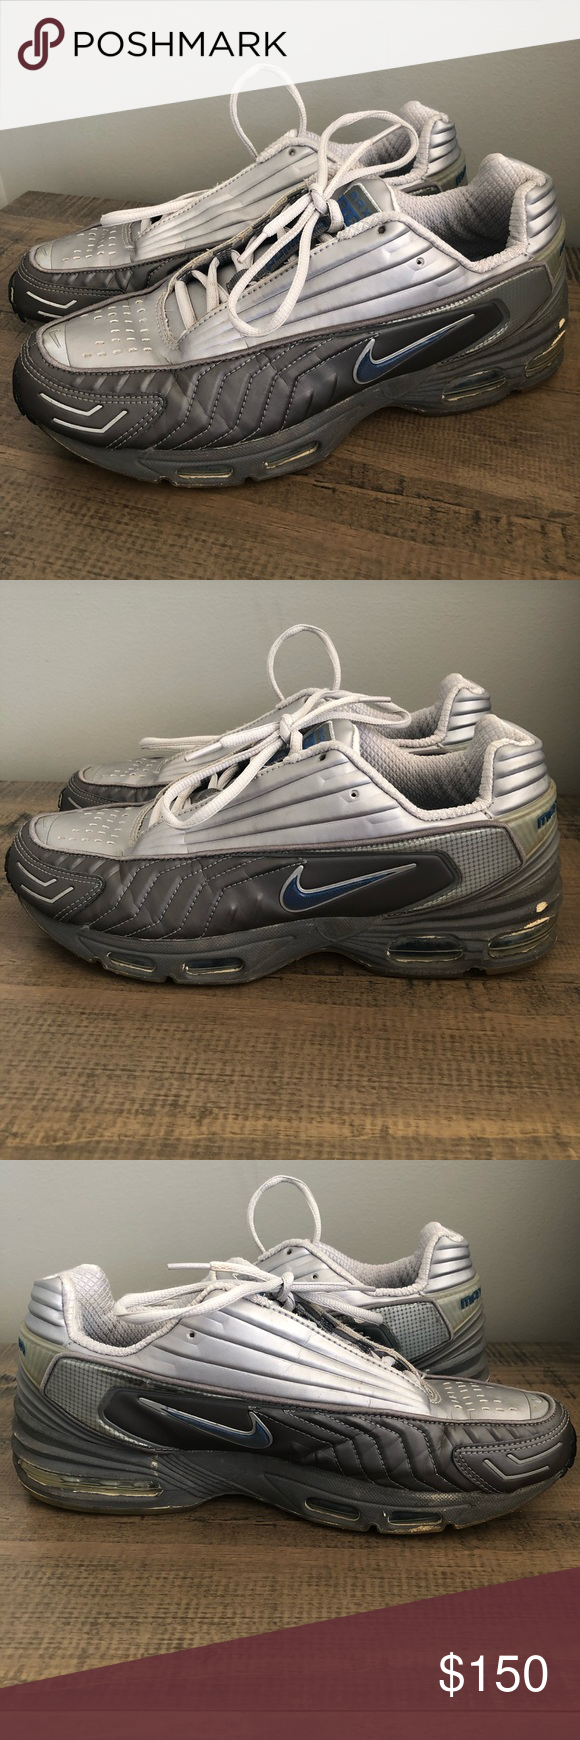 save off 6747b c4187 VTG Nike Air Max Tailwind 2002 shoes, 10 Shoes have some ...